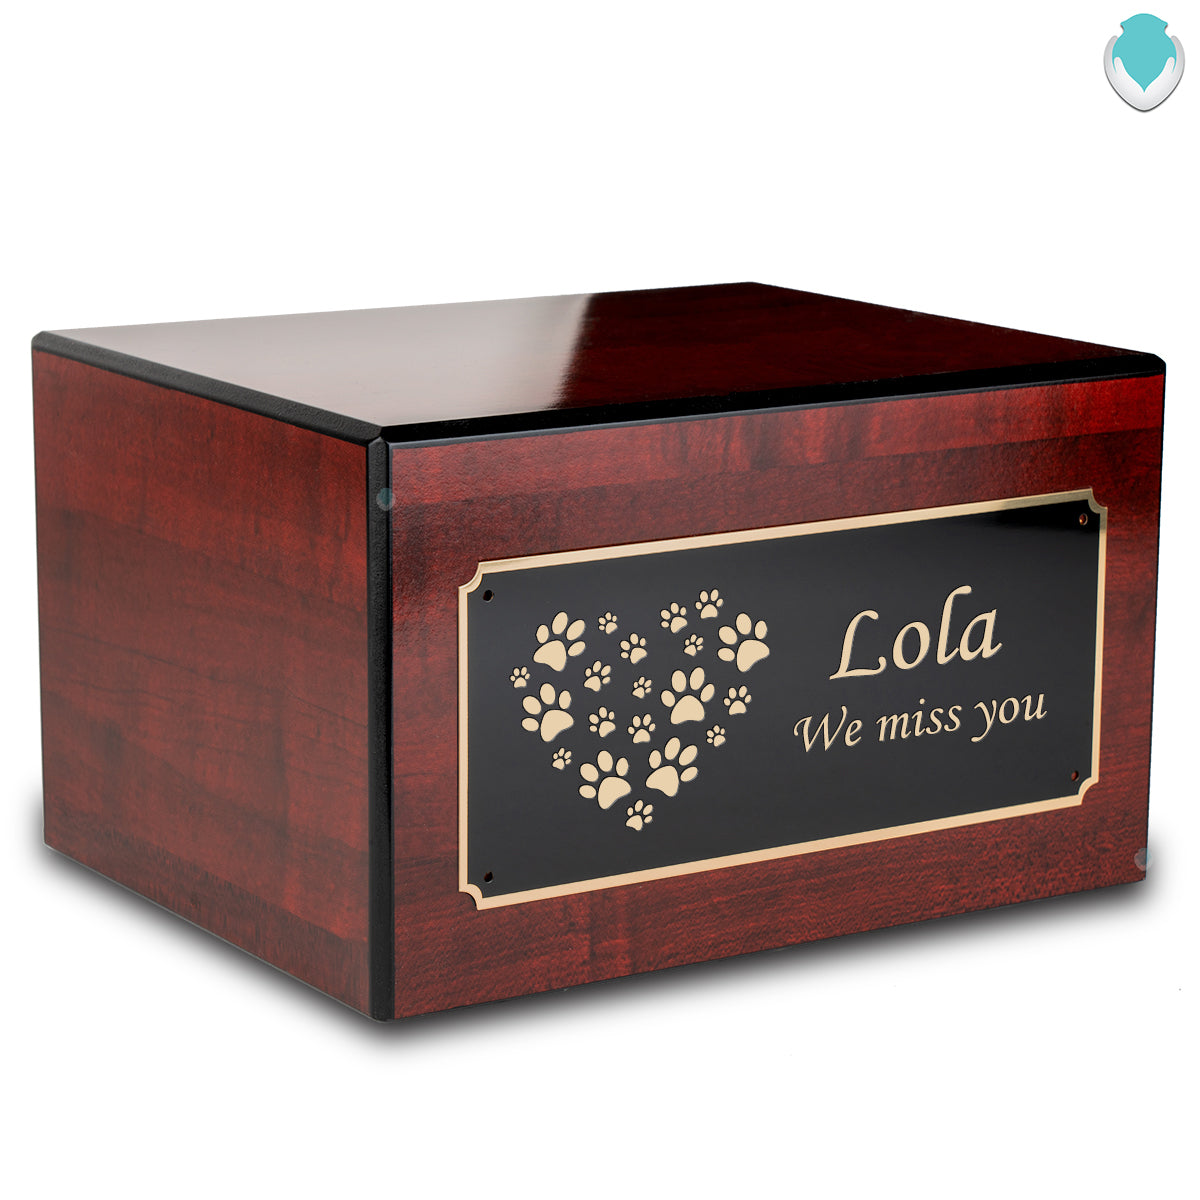 Society Cherry Heart Paws Pet Large Cremation Urn Box